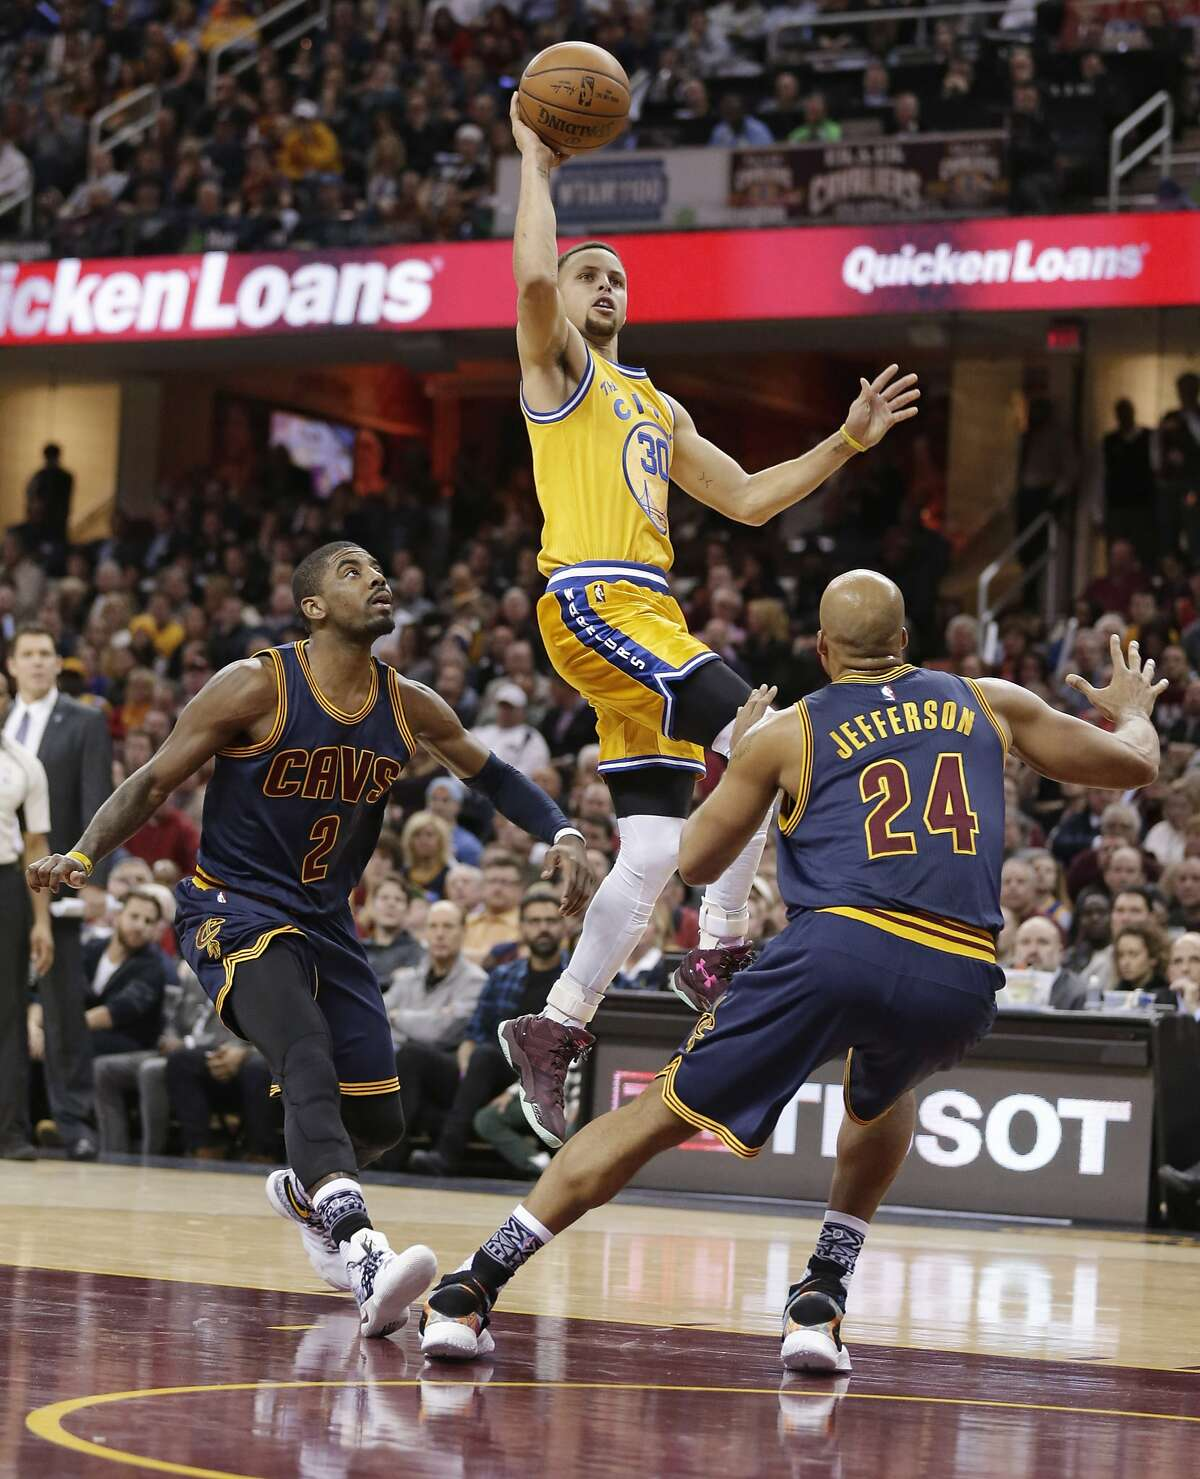 Golden State Warriors' Stephen Curry (30) shoots over Cleveland Cavaliers' Kyrie Irving (2) and Richard Jefferson (24) in the first half of an NBA basketball game Monday, Jan. 18, 2016, in Cleveland. (AP Photo/Tony Dejak)